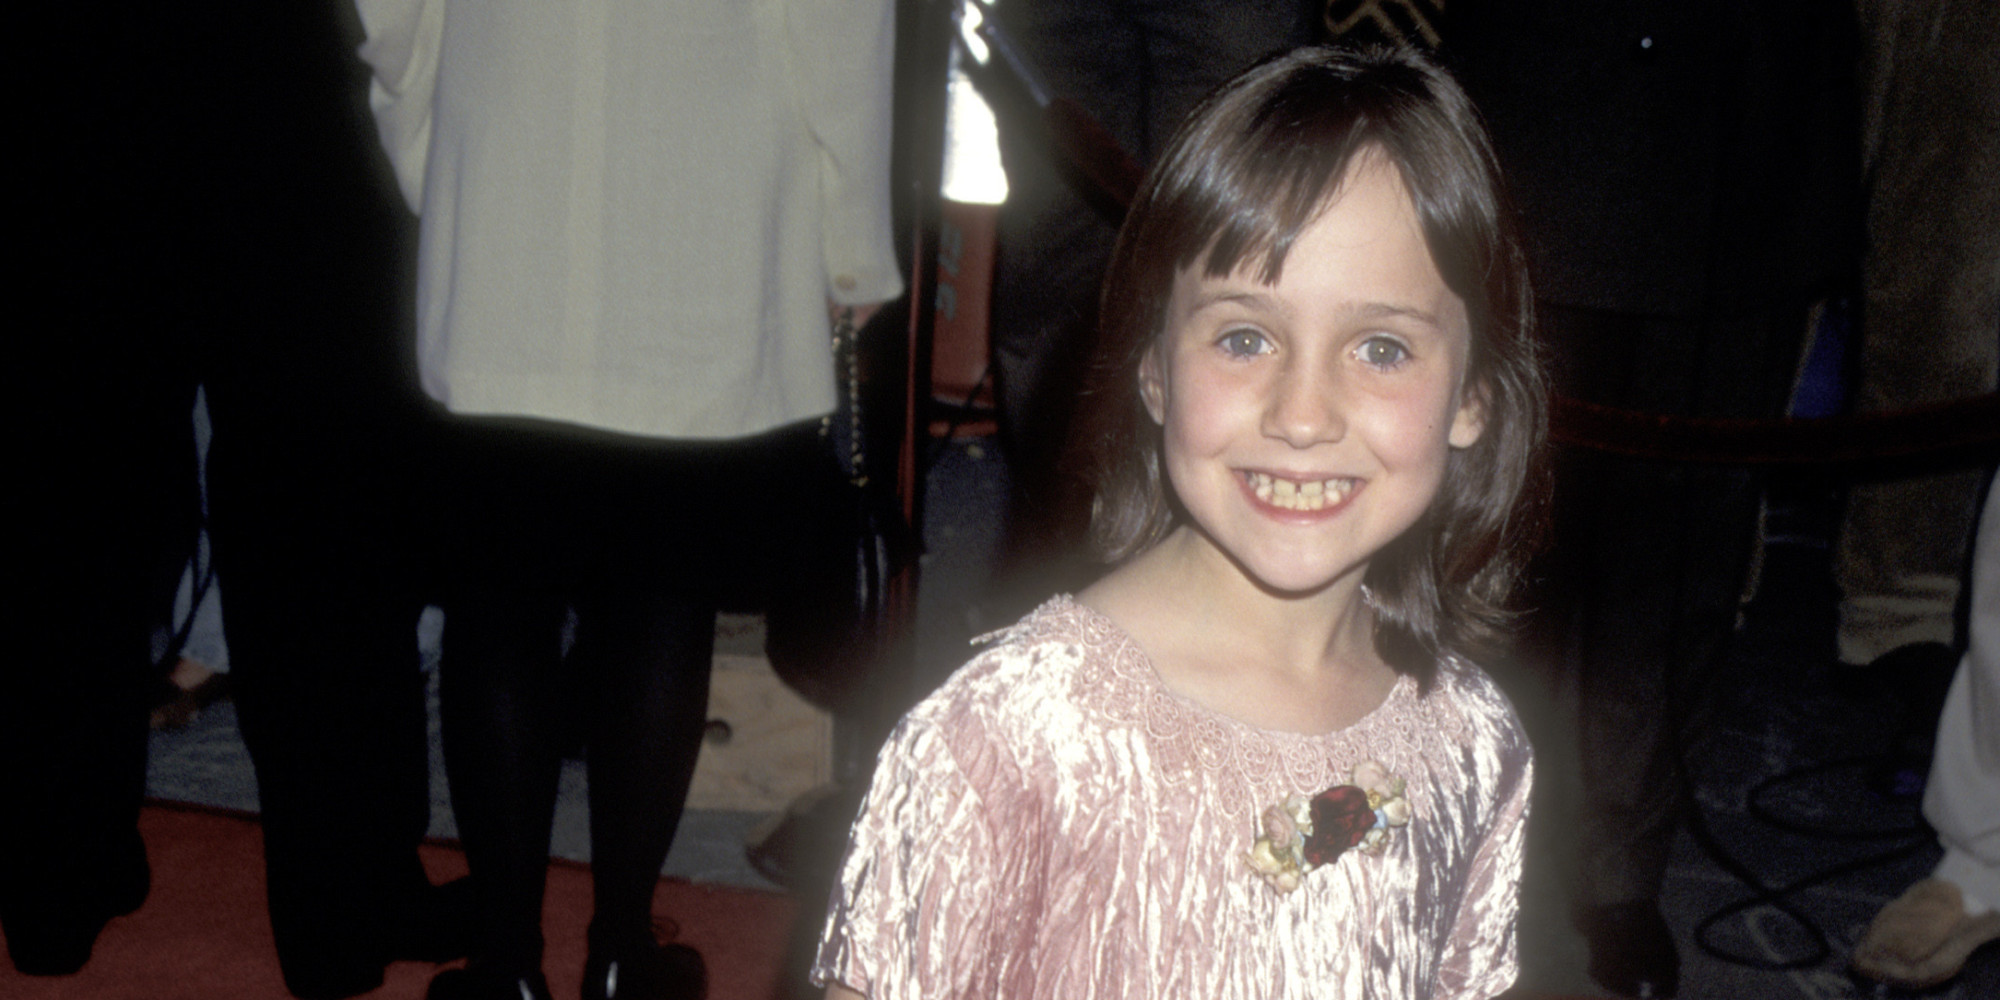 Gallery images and information: mara wilson 2013